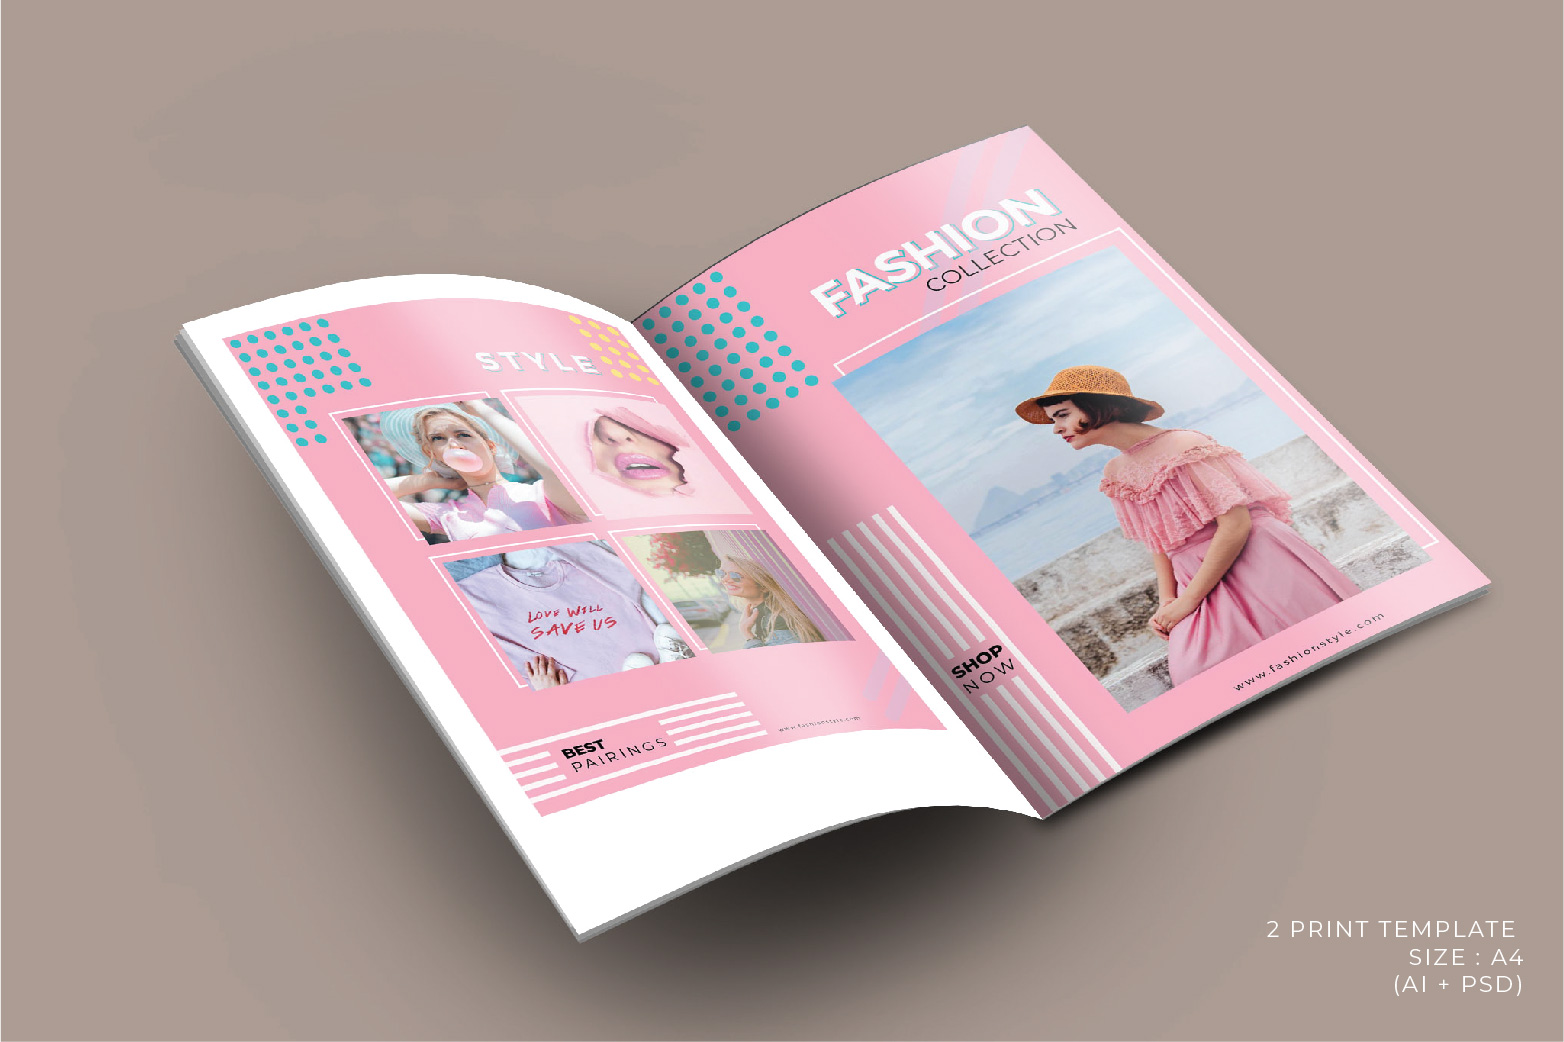 Fashion Template - 2 Poster & 5 InstaStories example image 4